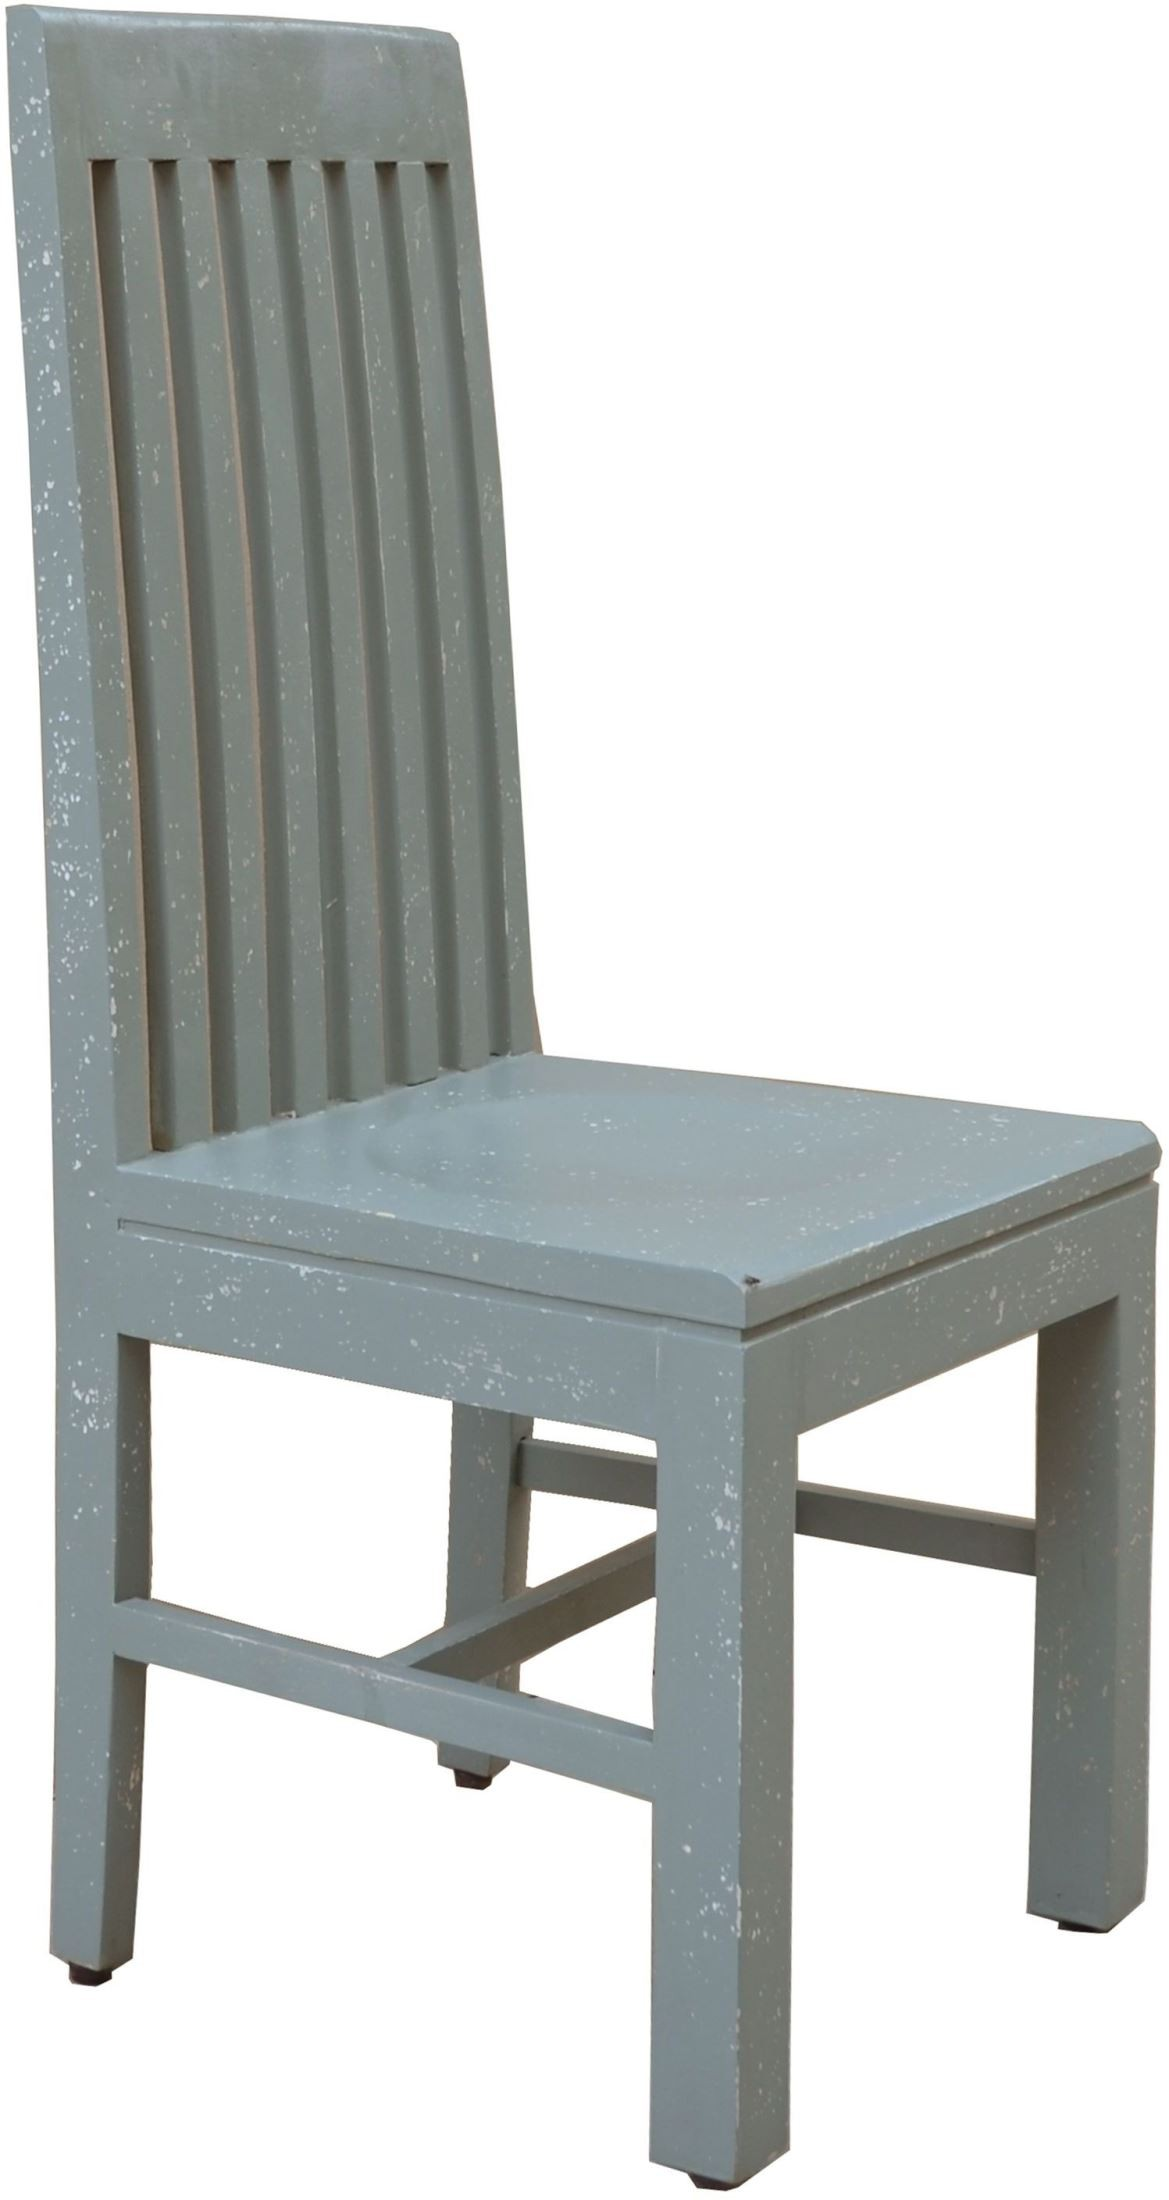 Distressed White Dining Chairs Hamptons Distressed Dining Chair Set Of 2 From Coast To